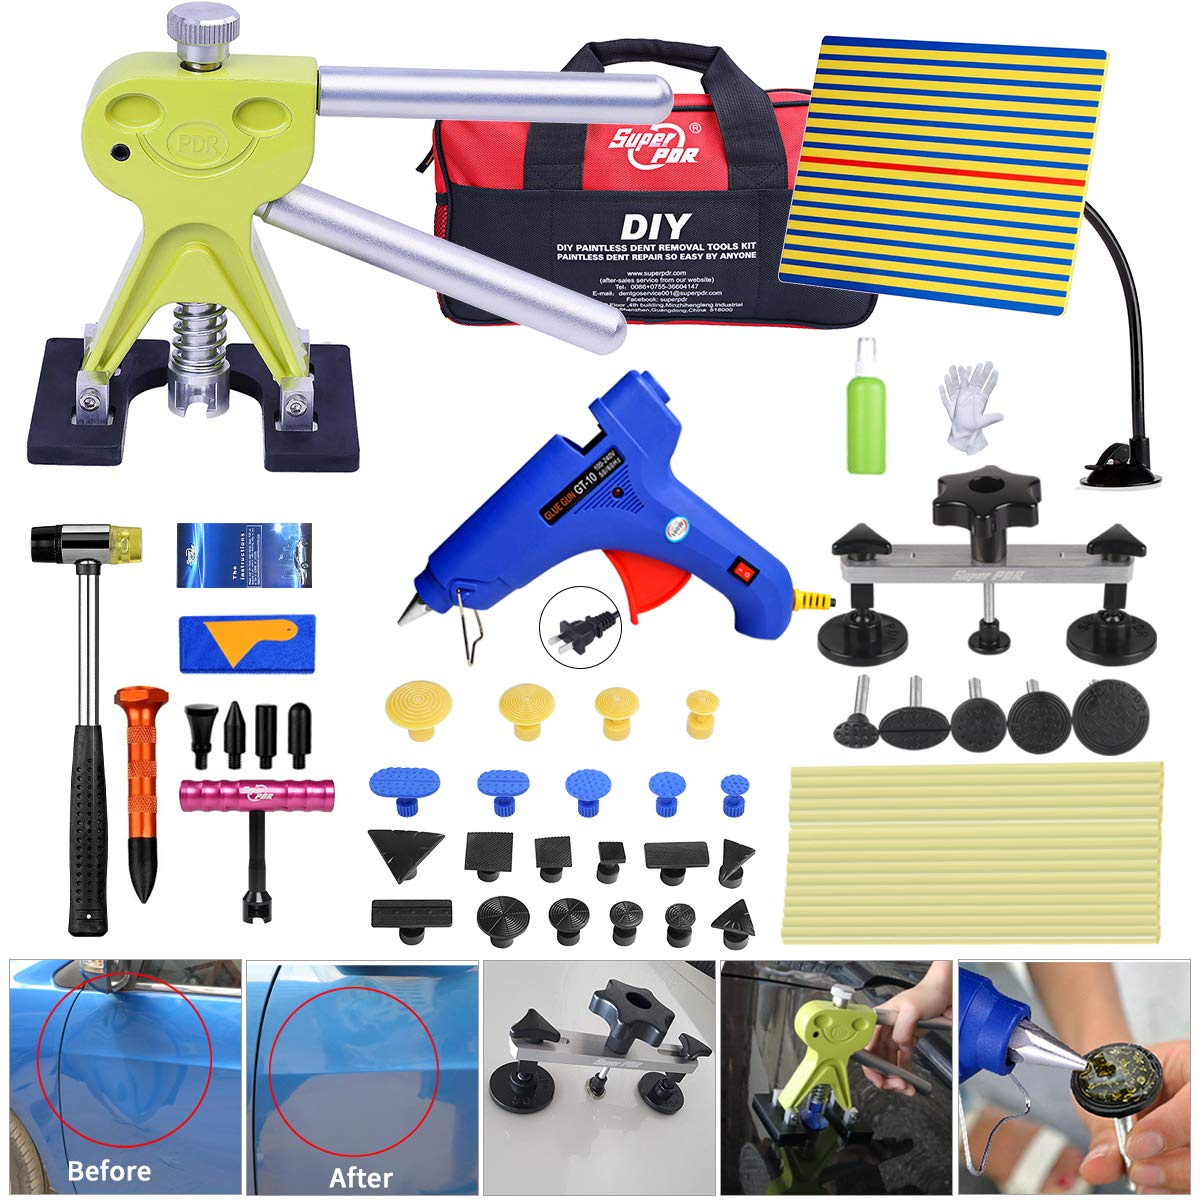 Fly5D 44pcs Auto Car Body Paintless Dent Repair Removal Tools Kit Dent Lifter Pop Out a Dent Bridge Puller Set for Car Dent Hail Damage Door Dings Repair